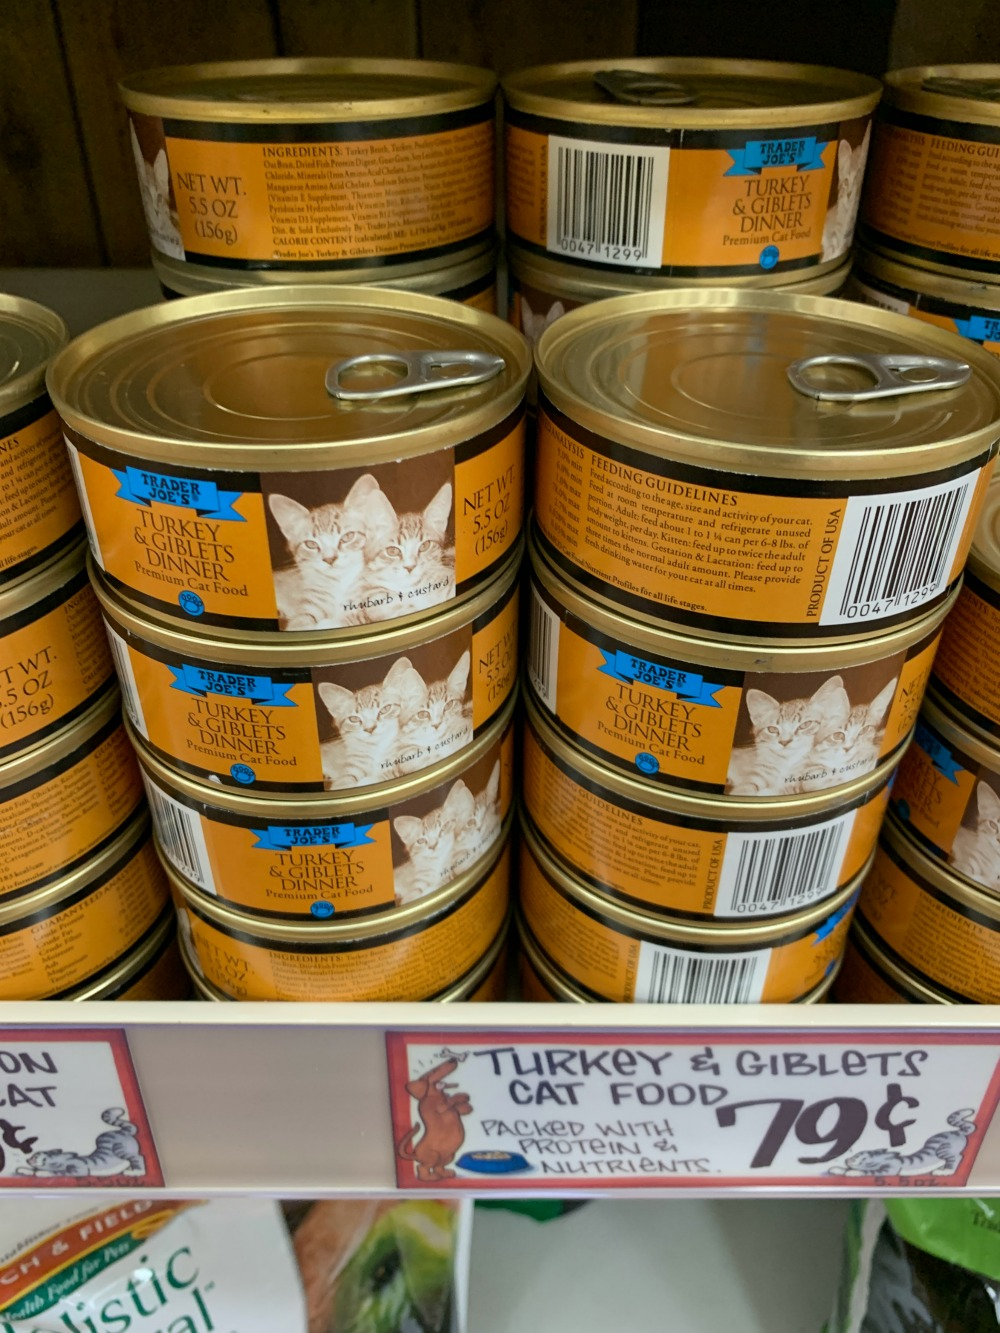 Stacked cans of Trader Joe's Turkey & Giblets wet cat food. Cans are orange with a picture of two cats on the front.